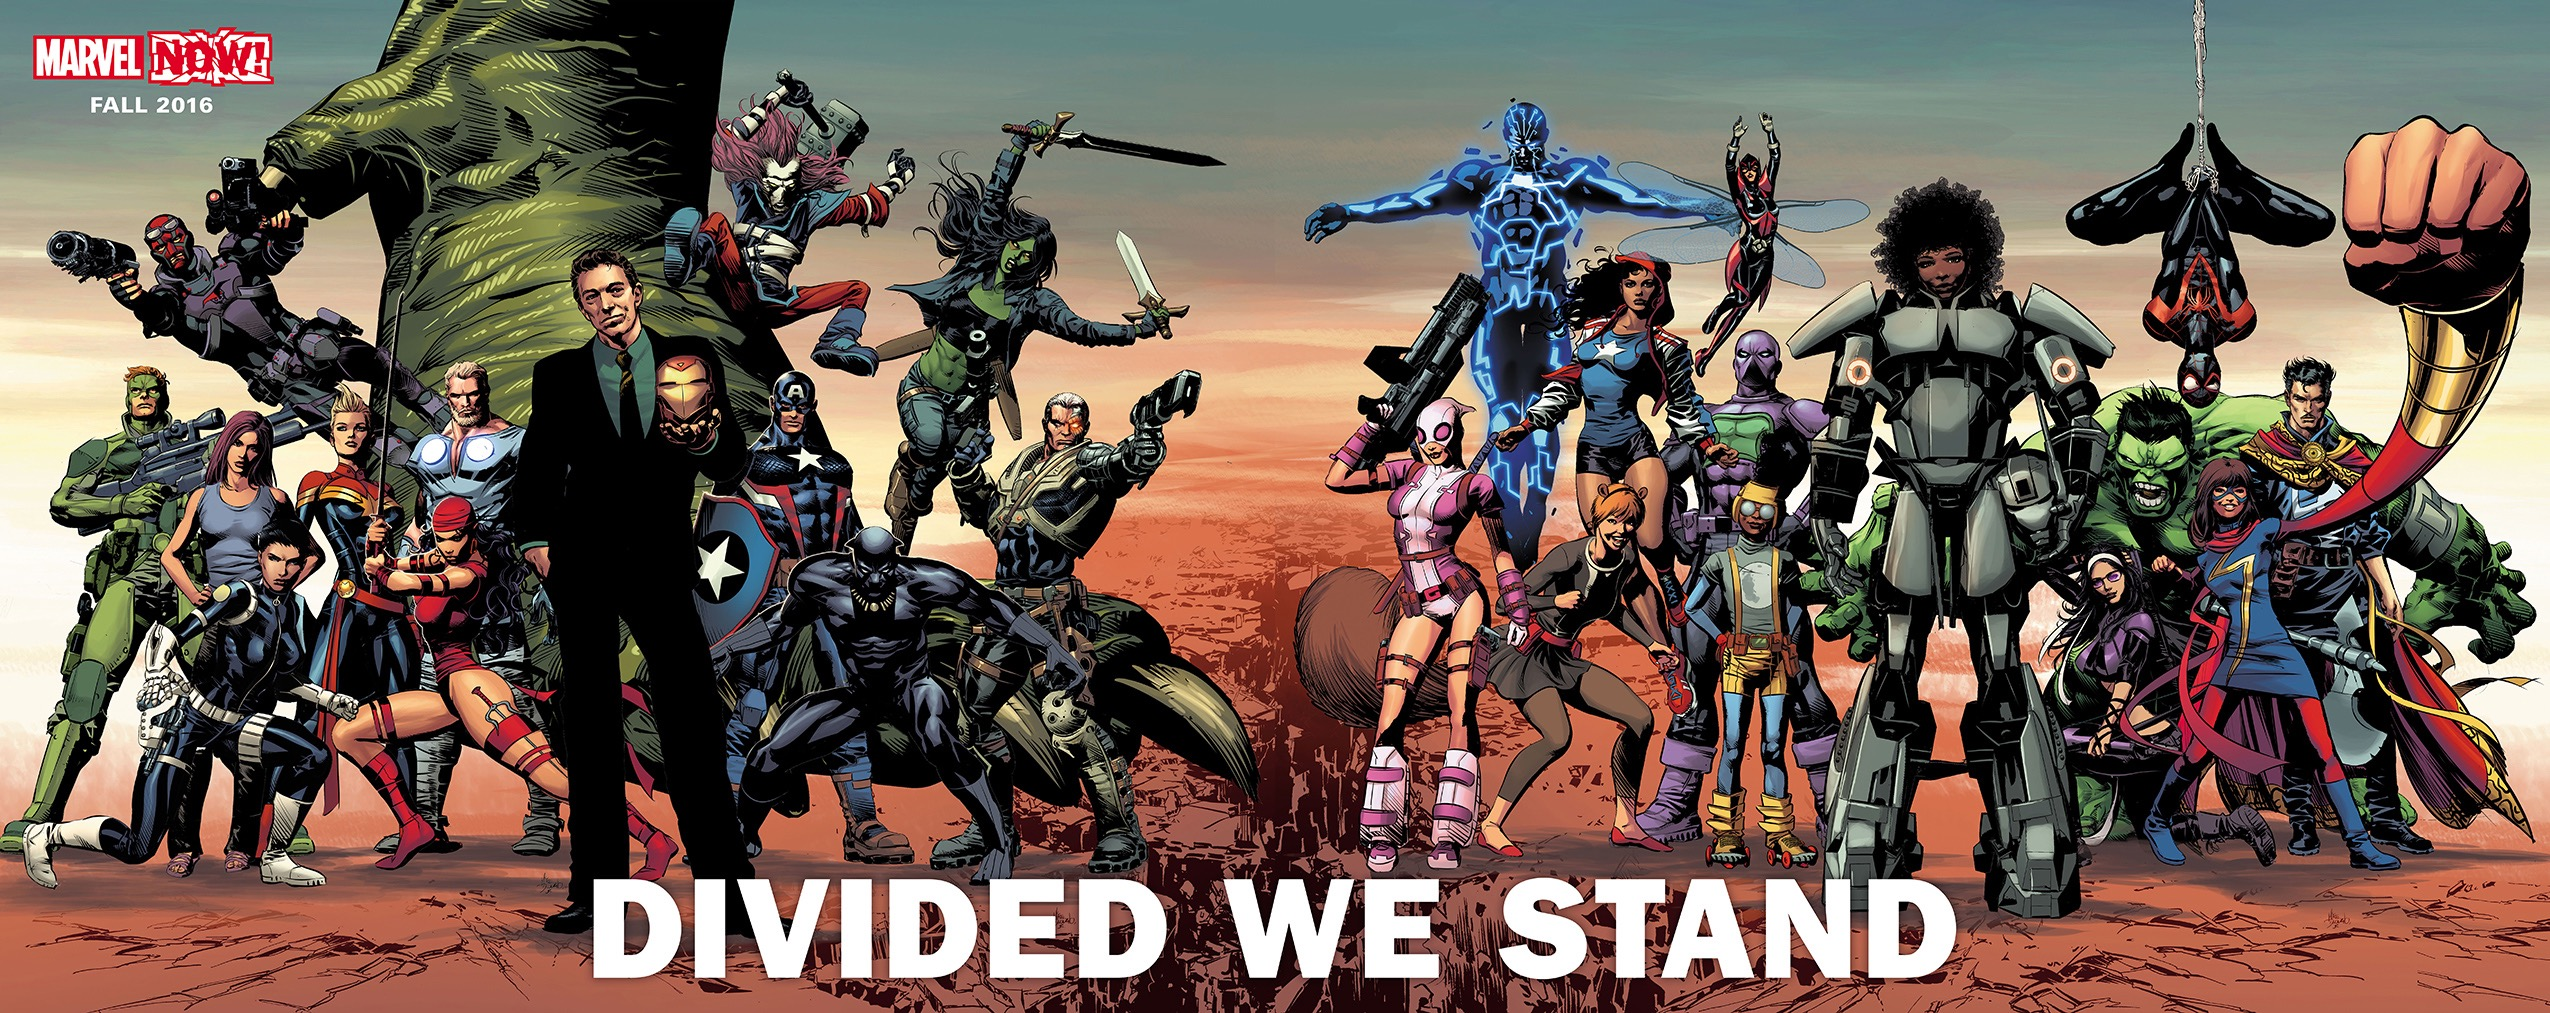 3061358-inline-i-1-divided-we-stand-marvel-shell.jpg